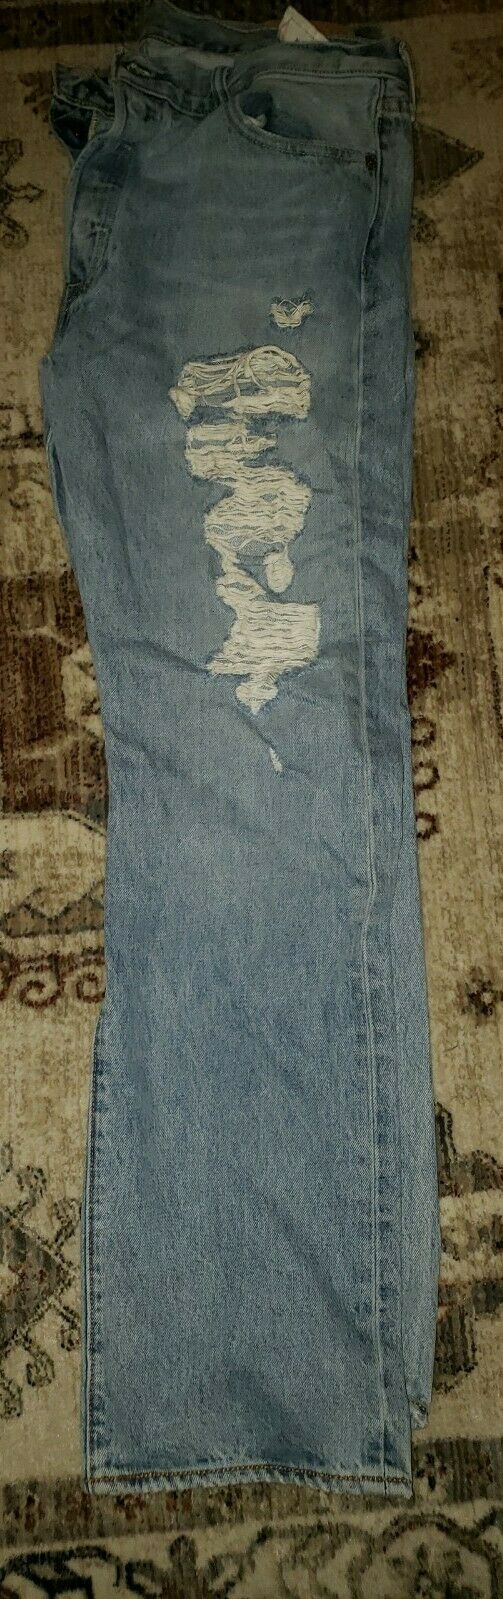 Levis 501's Jeans Distressed 36x32 Button Fly - image 8